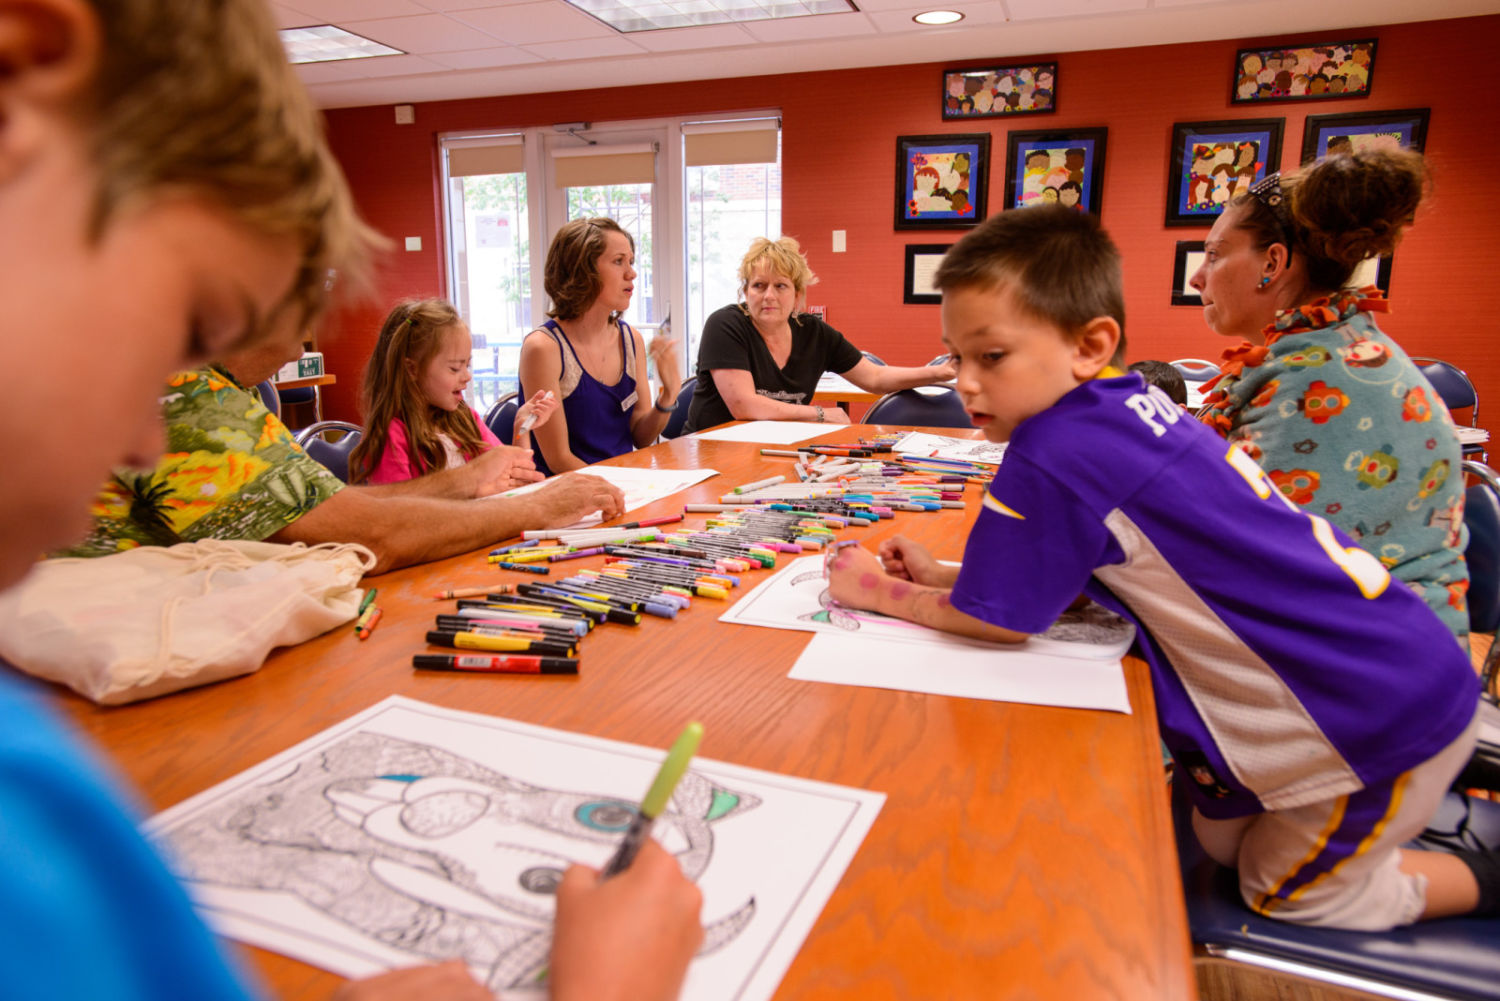 Group of children and adults coloring together